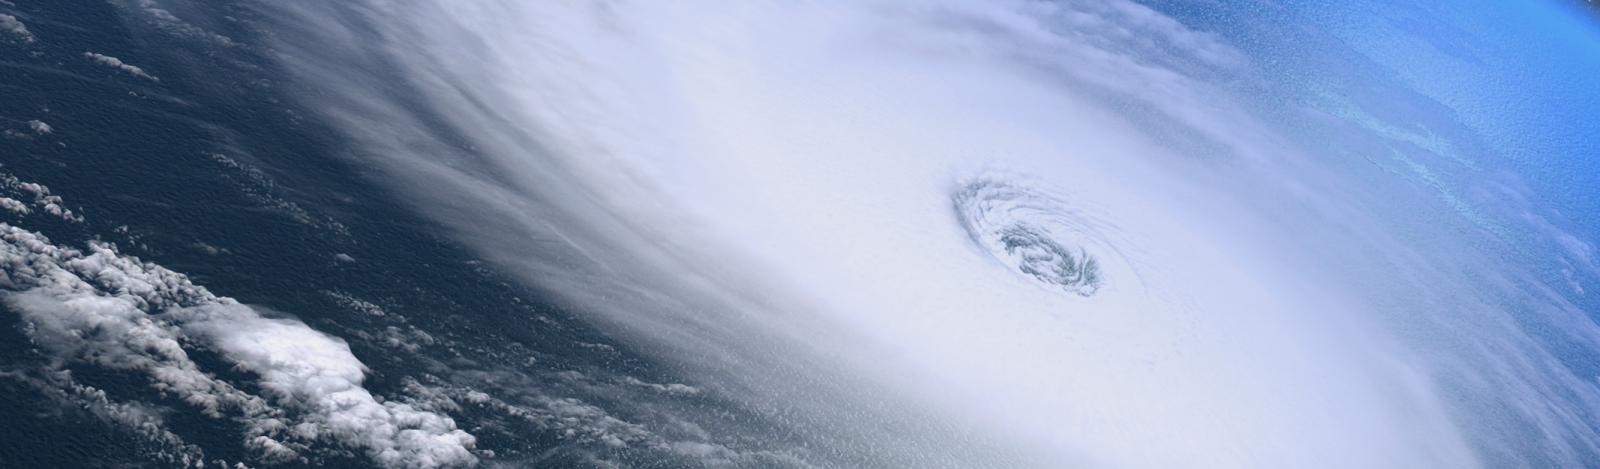 Hurricane as seen from a sattelite